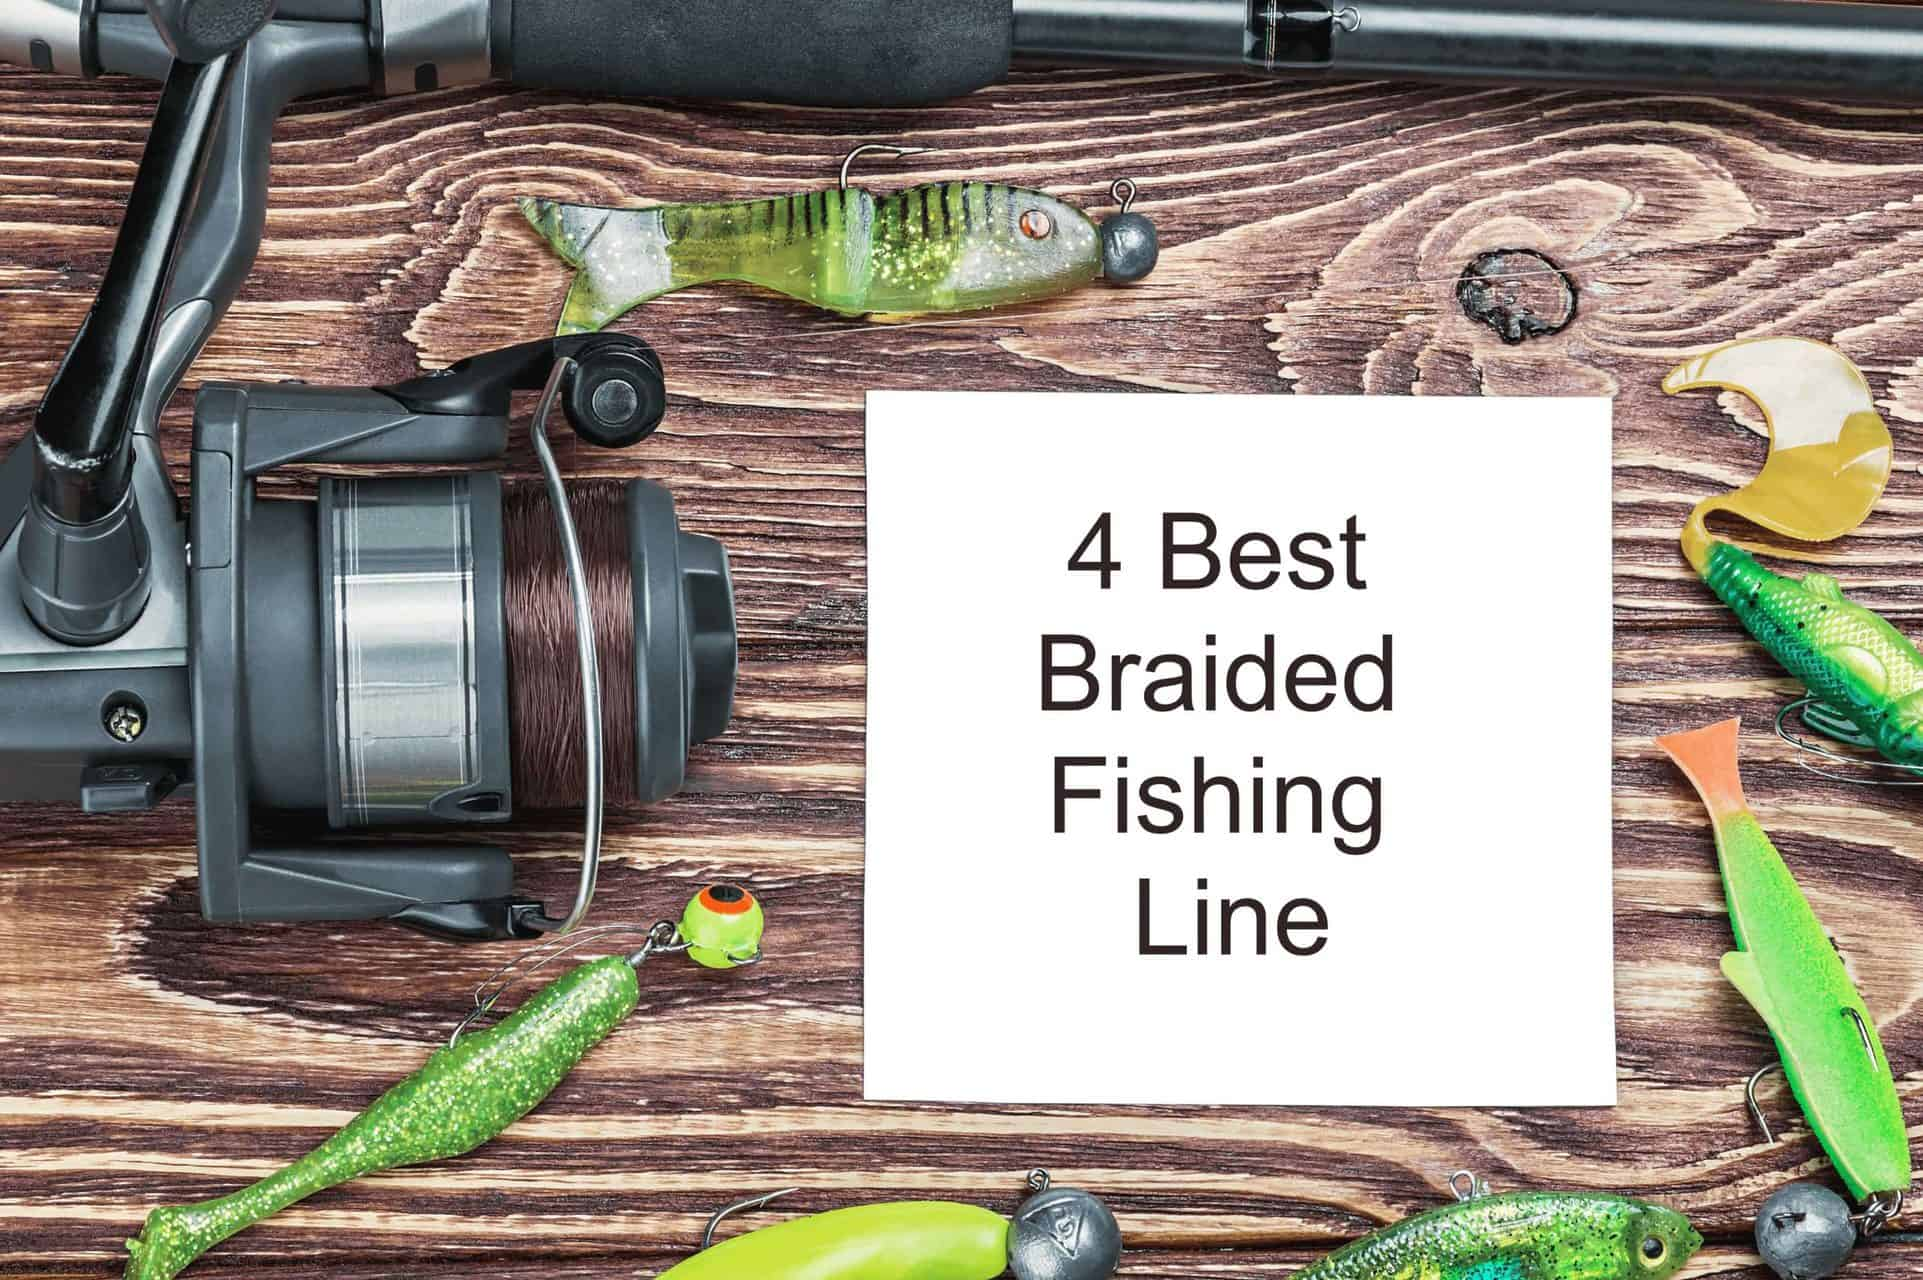 4 Best Braided Fishing Line reviews